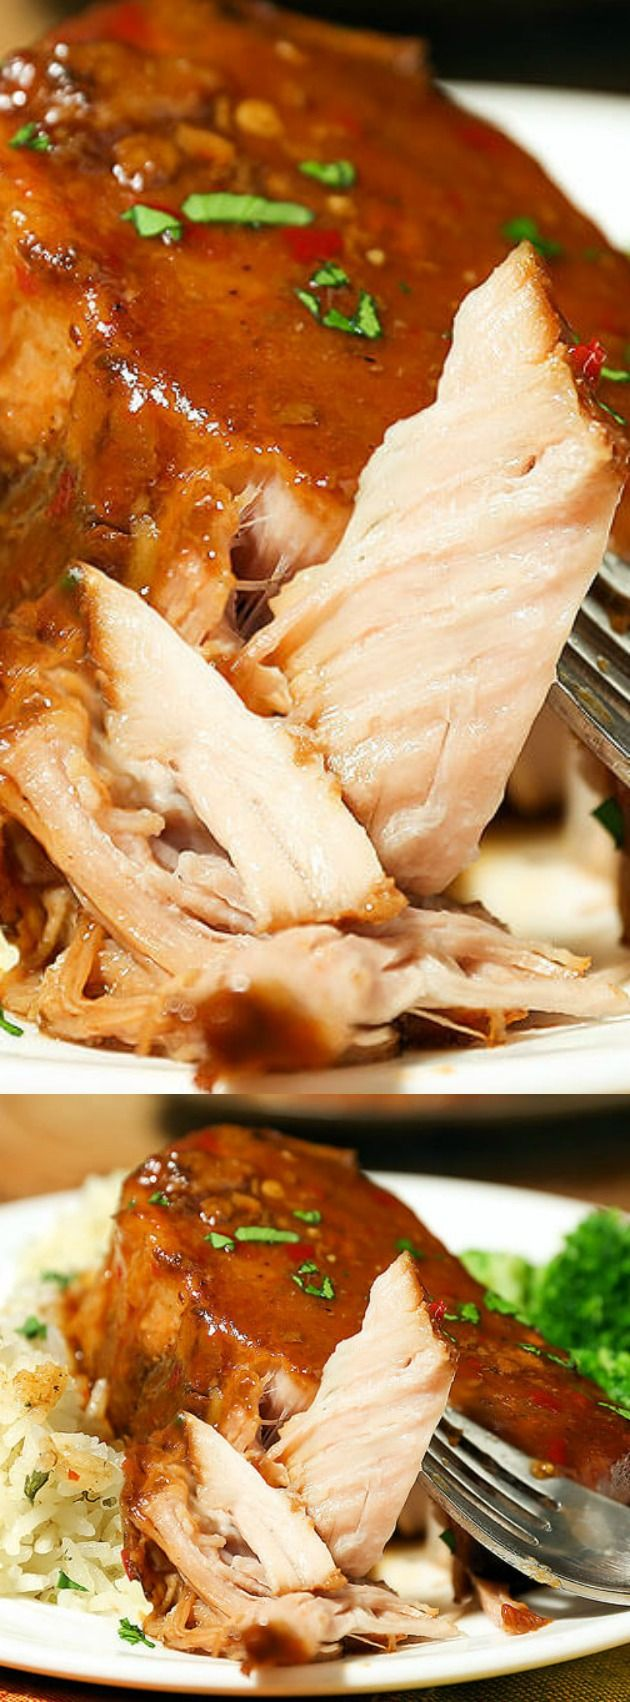 how to cook pork roast low and slow